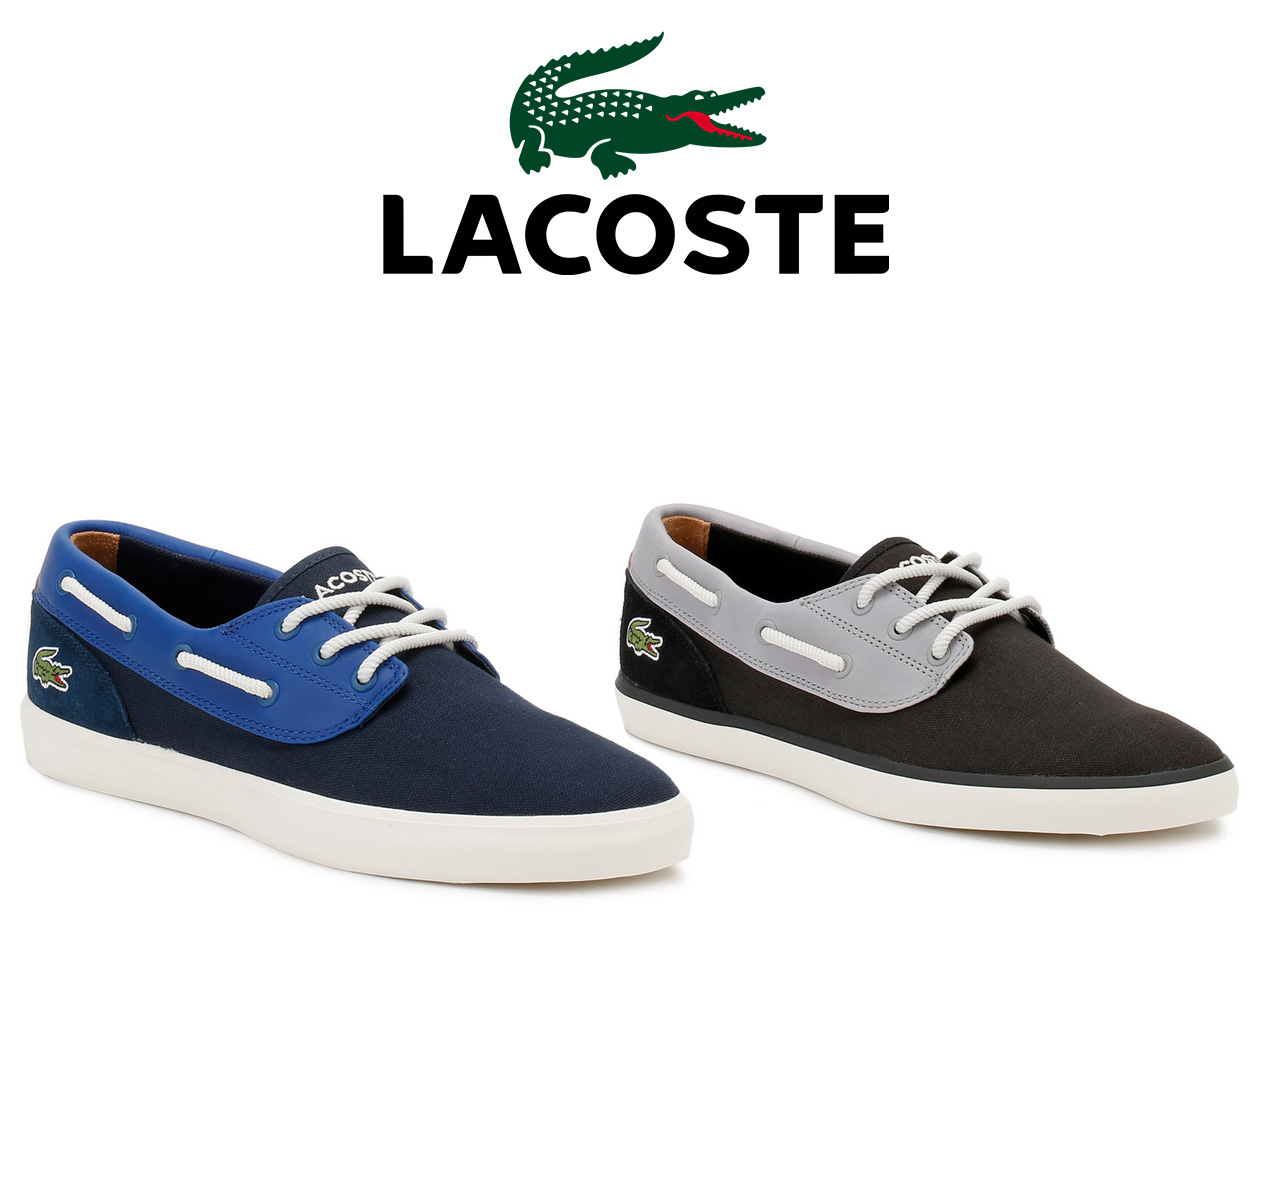 3ef399e2dc76 ... these Lacoste deck shoes are perfect for the summer months. Featuring a  Canvas and Leather panelled upper with contrasting twisted rope laces and  tonal ...